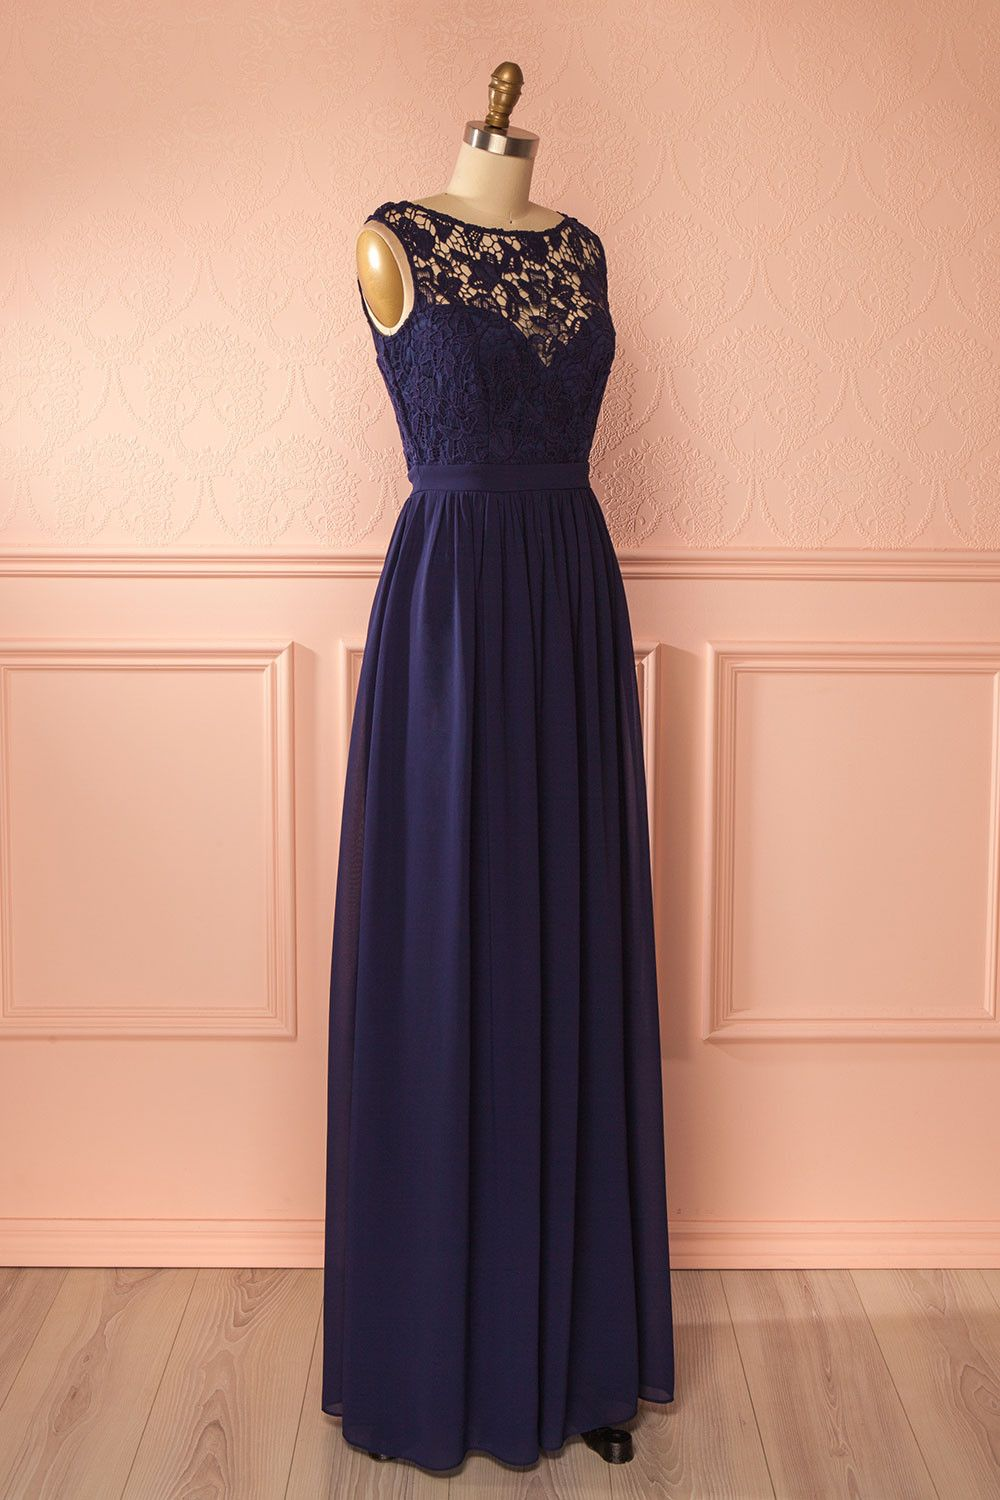 Kabby Night - Navy blue lace bust empire gown